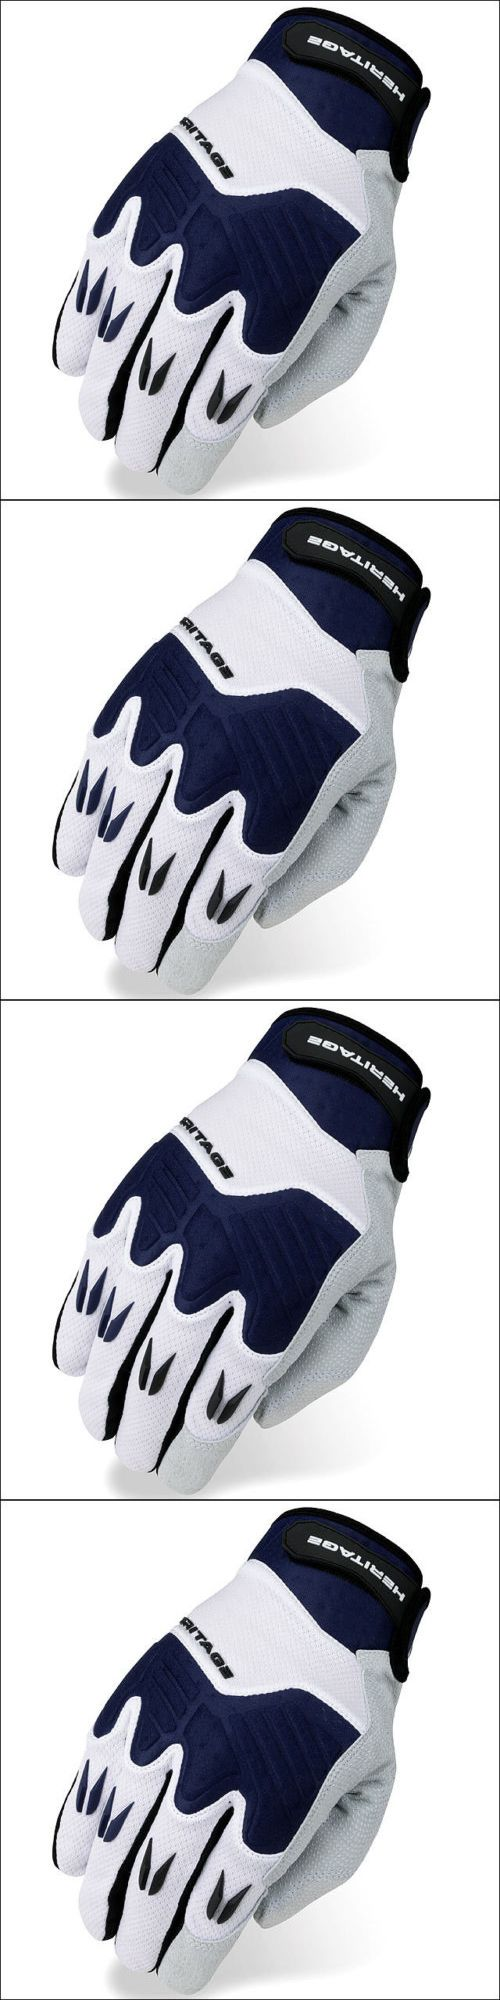 Riding Gloves 95104: 11 Size Heritage Polo Pro Horse Riding Equestrian Padded Glove White Navy -> BUY IT NOW ONLY: $36.99 on eBay!